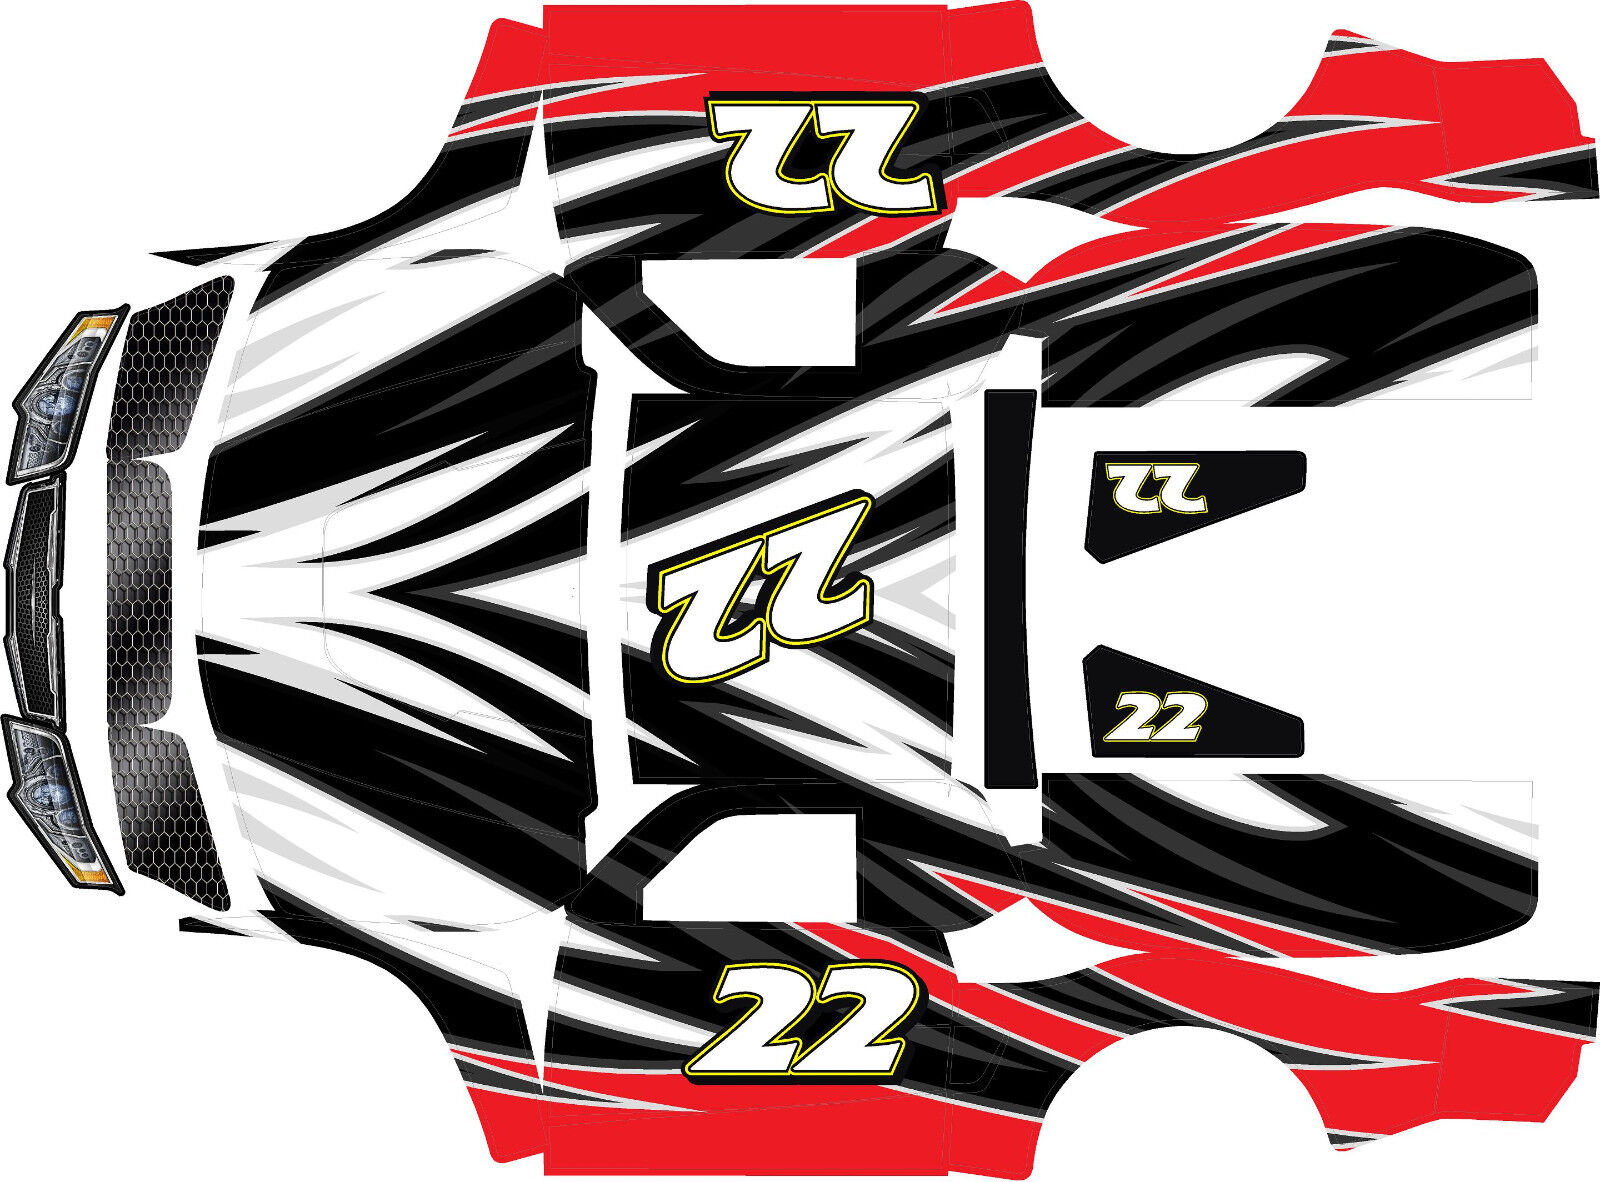 Losi 55wrap dekaler design 2 stor FLEX ROVAN TEAM HOONAGE